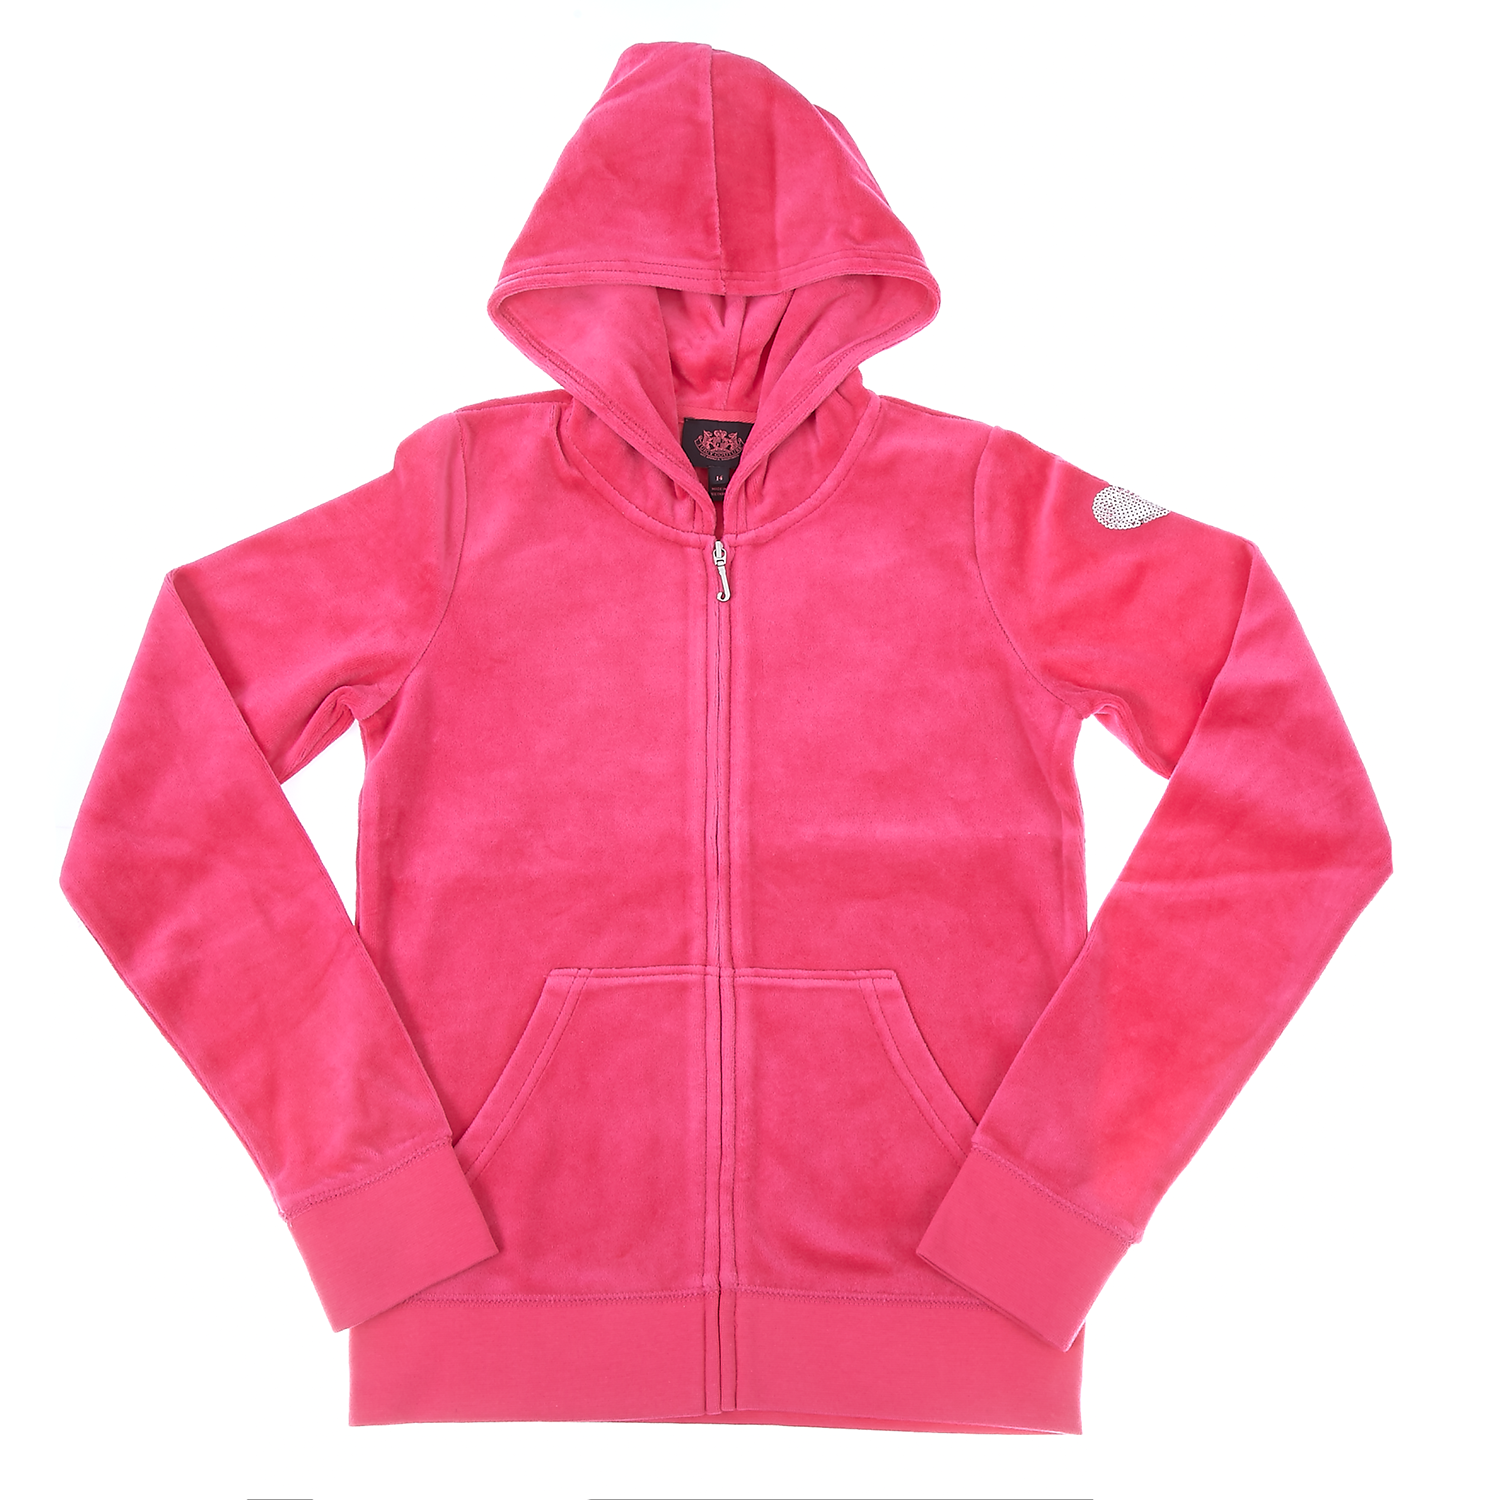 JUICY COUTURE KIDS – Παιδική ζακέτα Juicy Couture φούξια – Online Ρούχα fcfa9bb9aa6